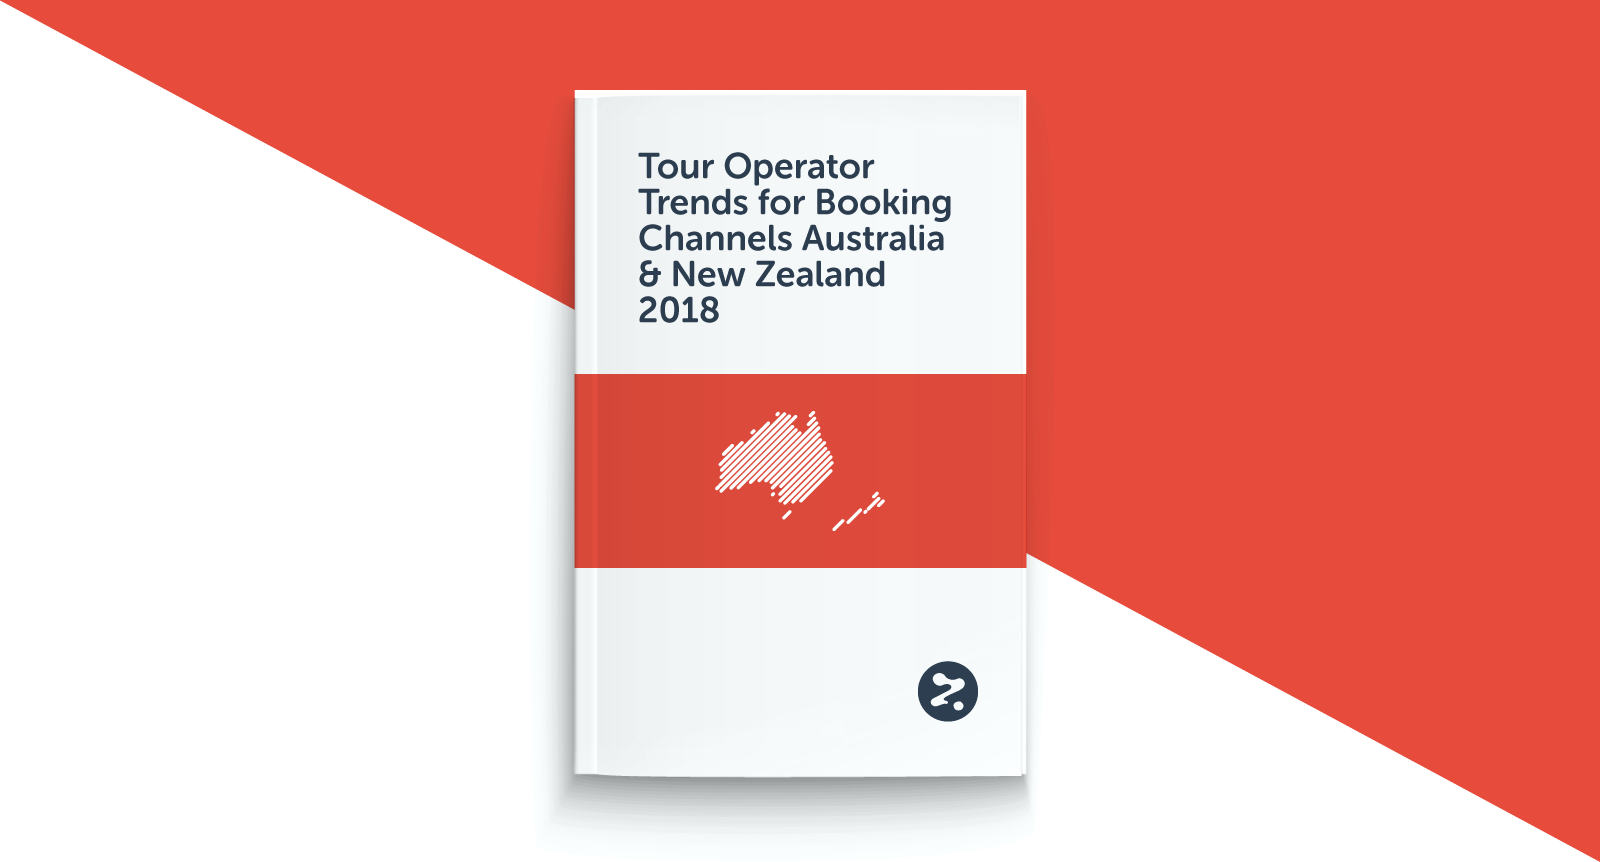 Tour Operator Trends for Booking Channels Australia & New Zealand 2018